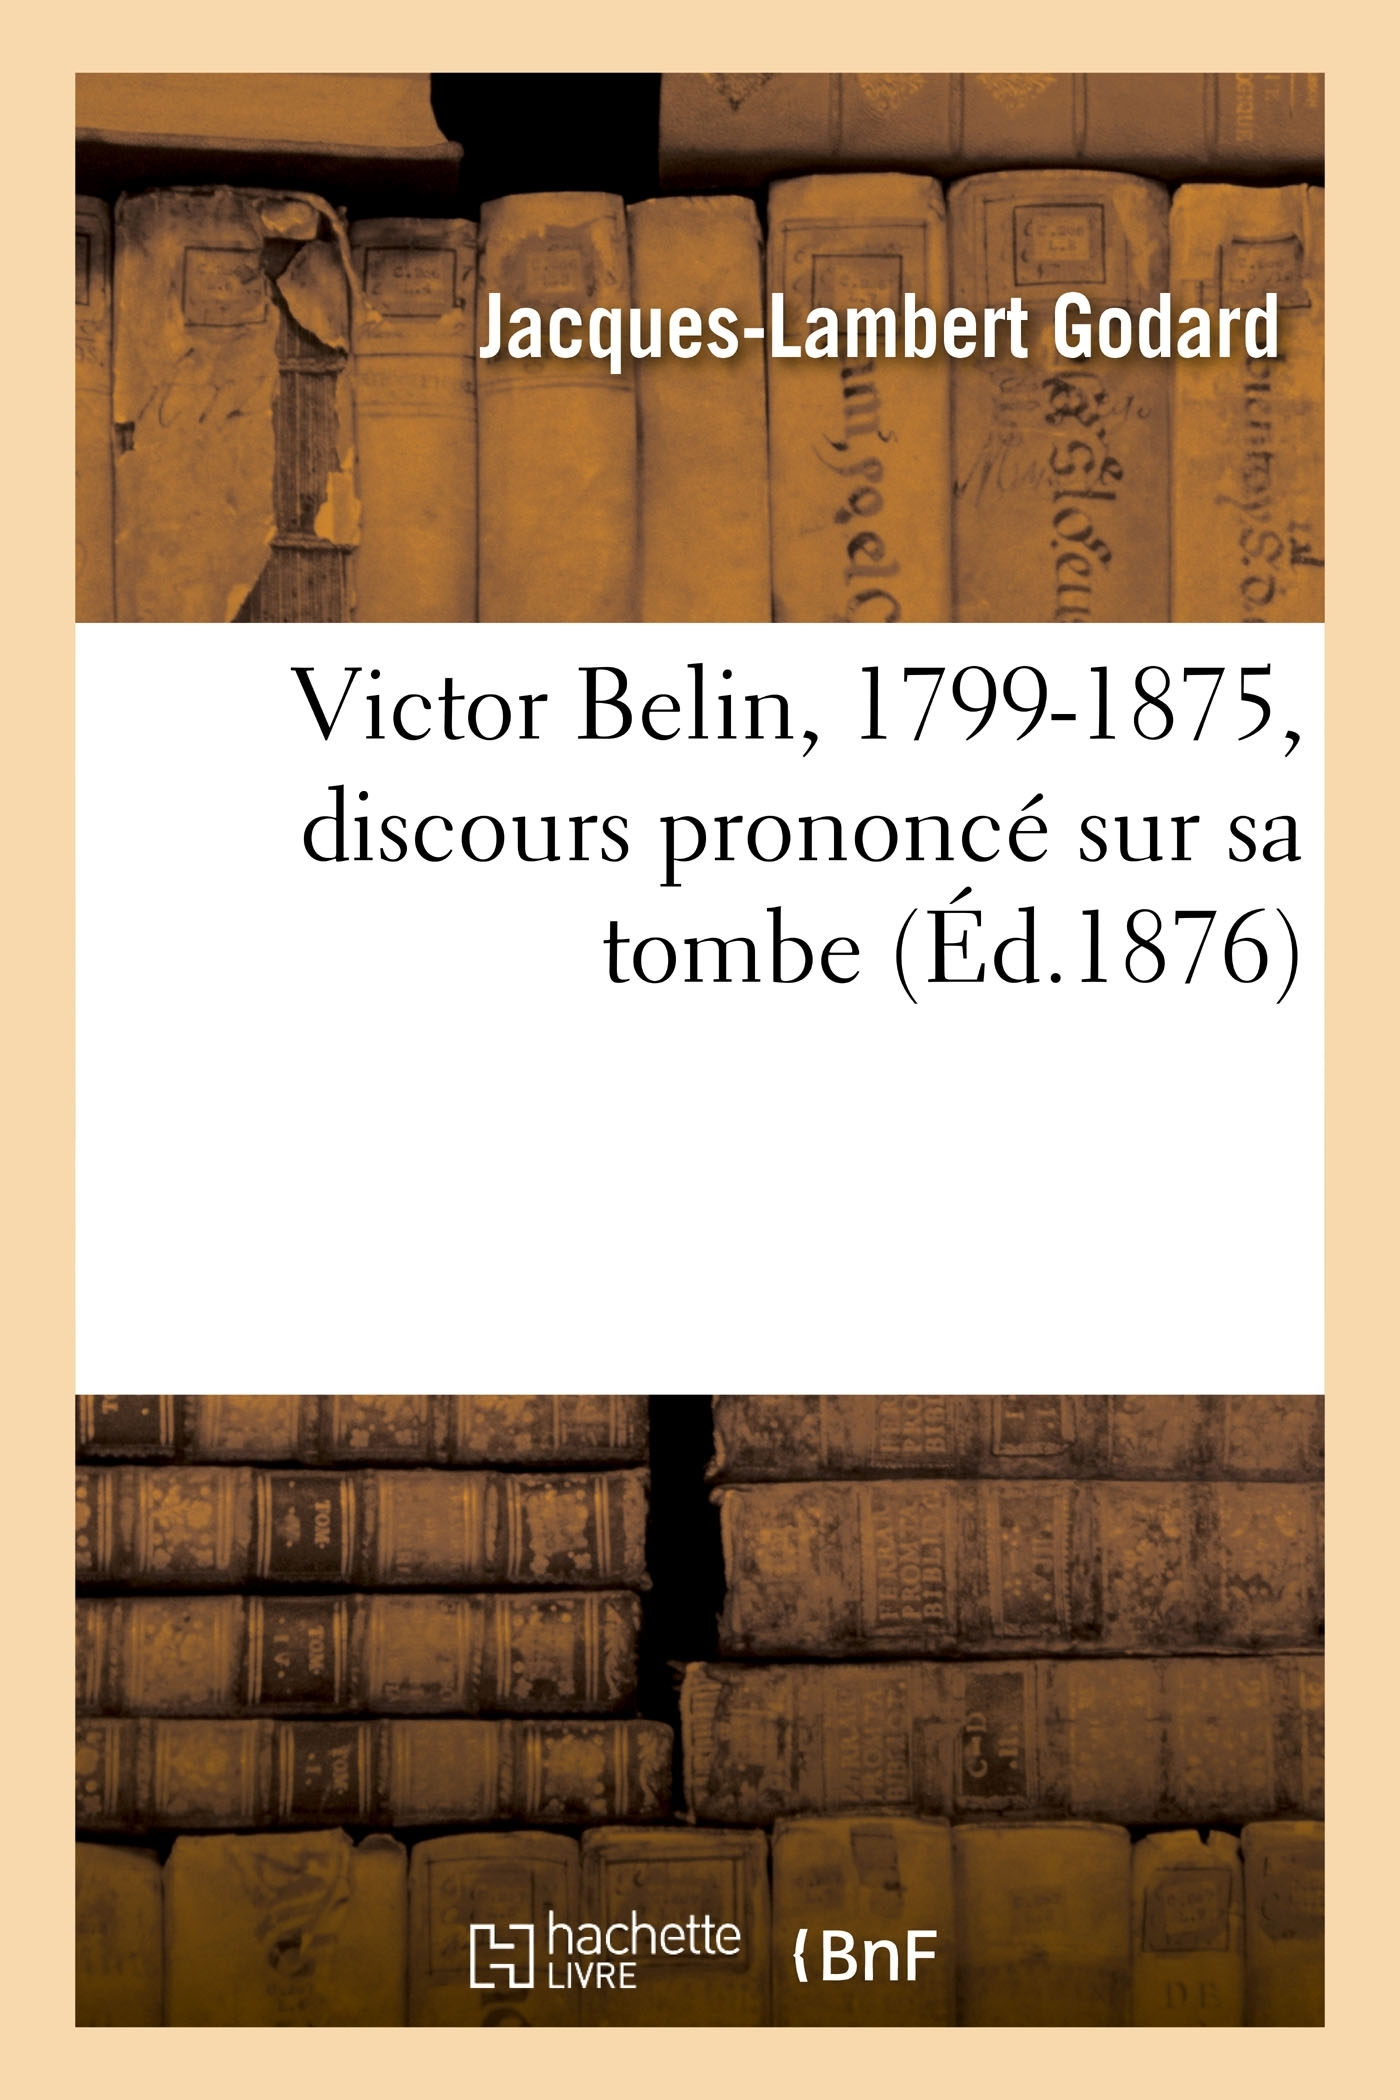 VICTOR BELIN, 1799-1875, DISCOURS PRONONCE SUR SA TOMBE